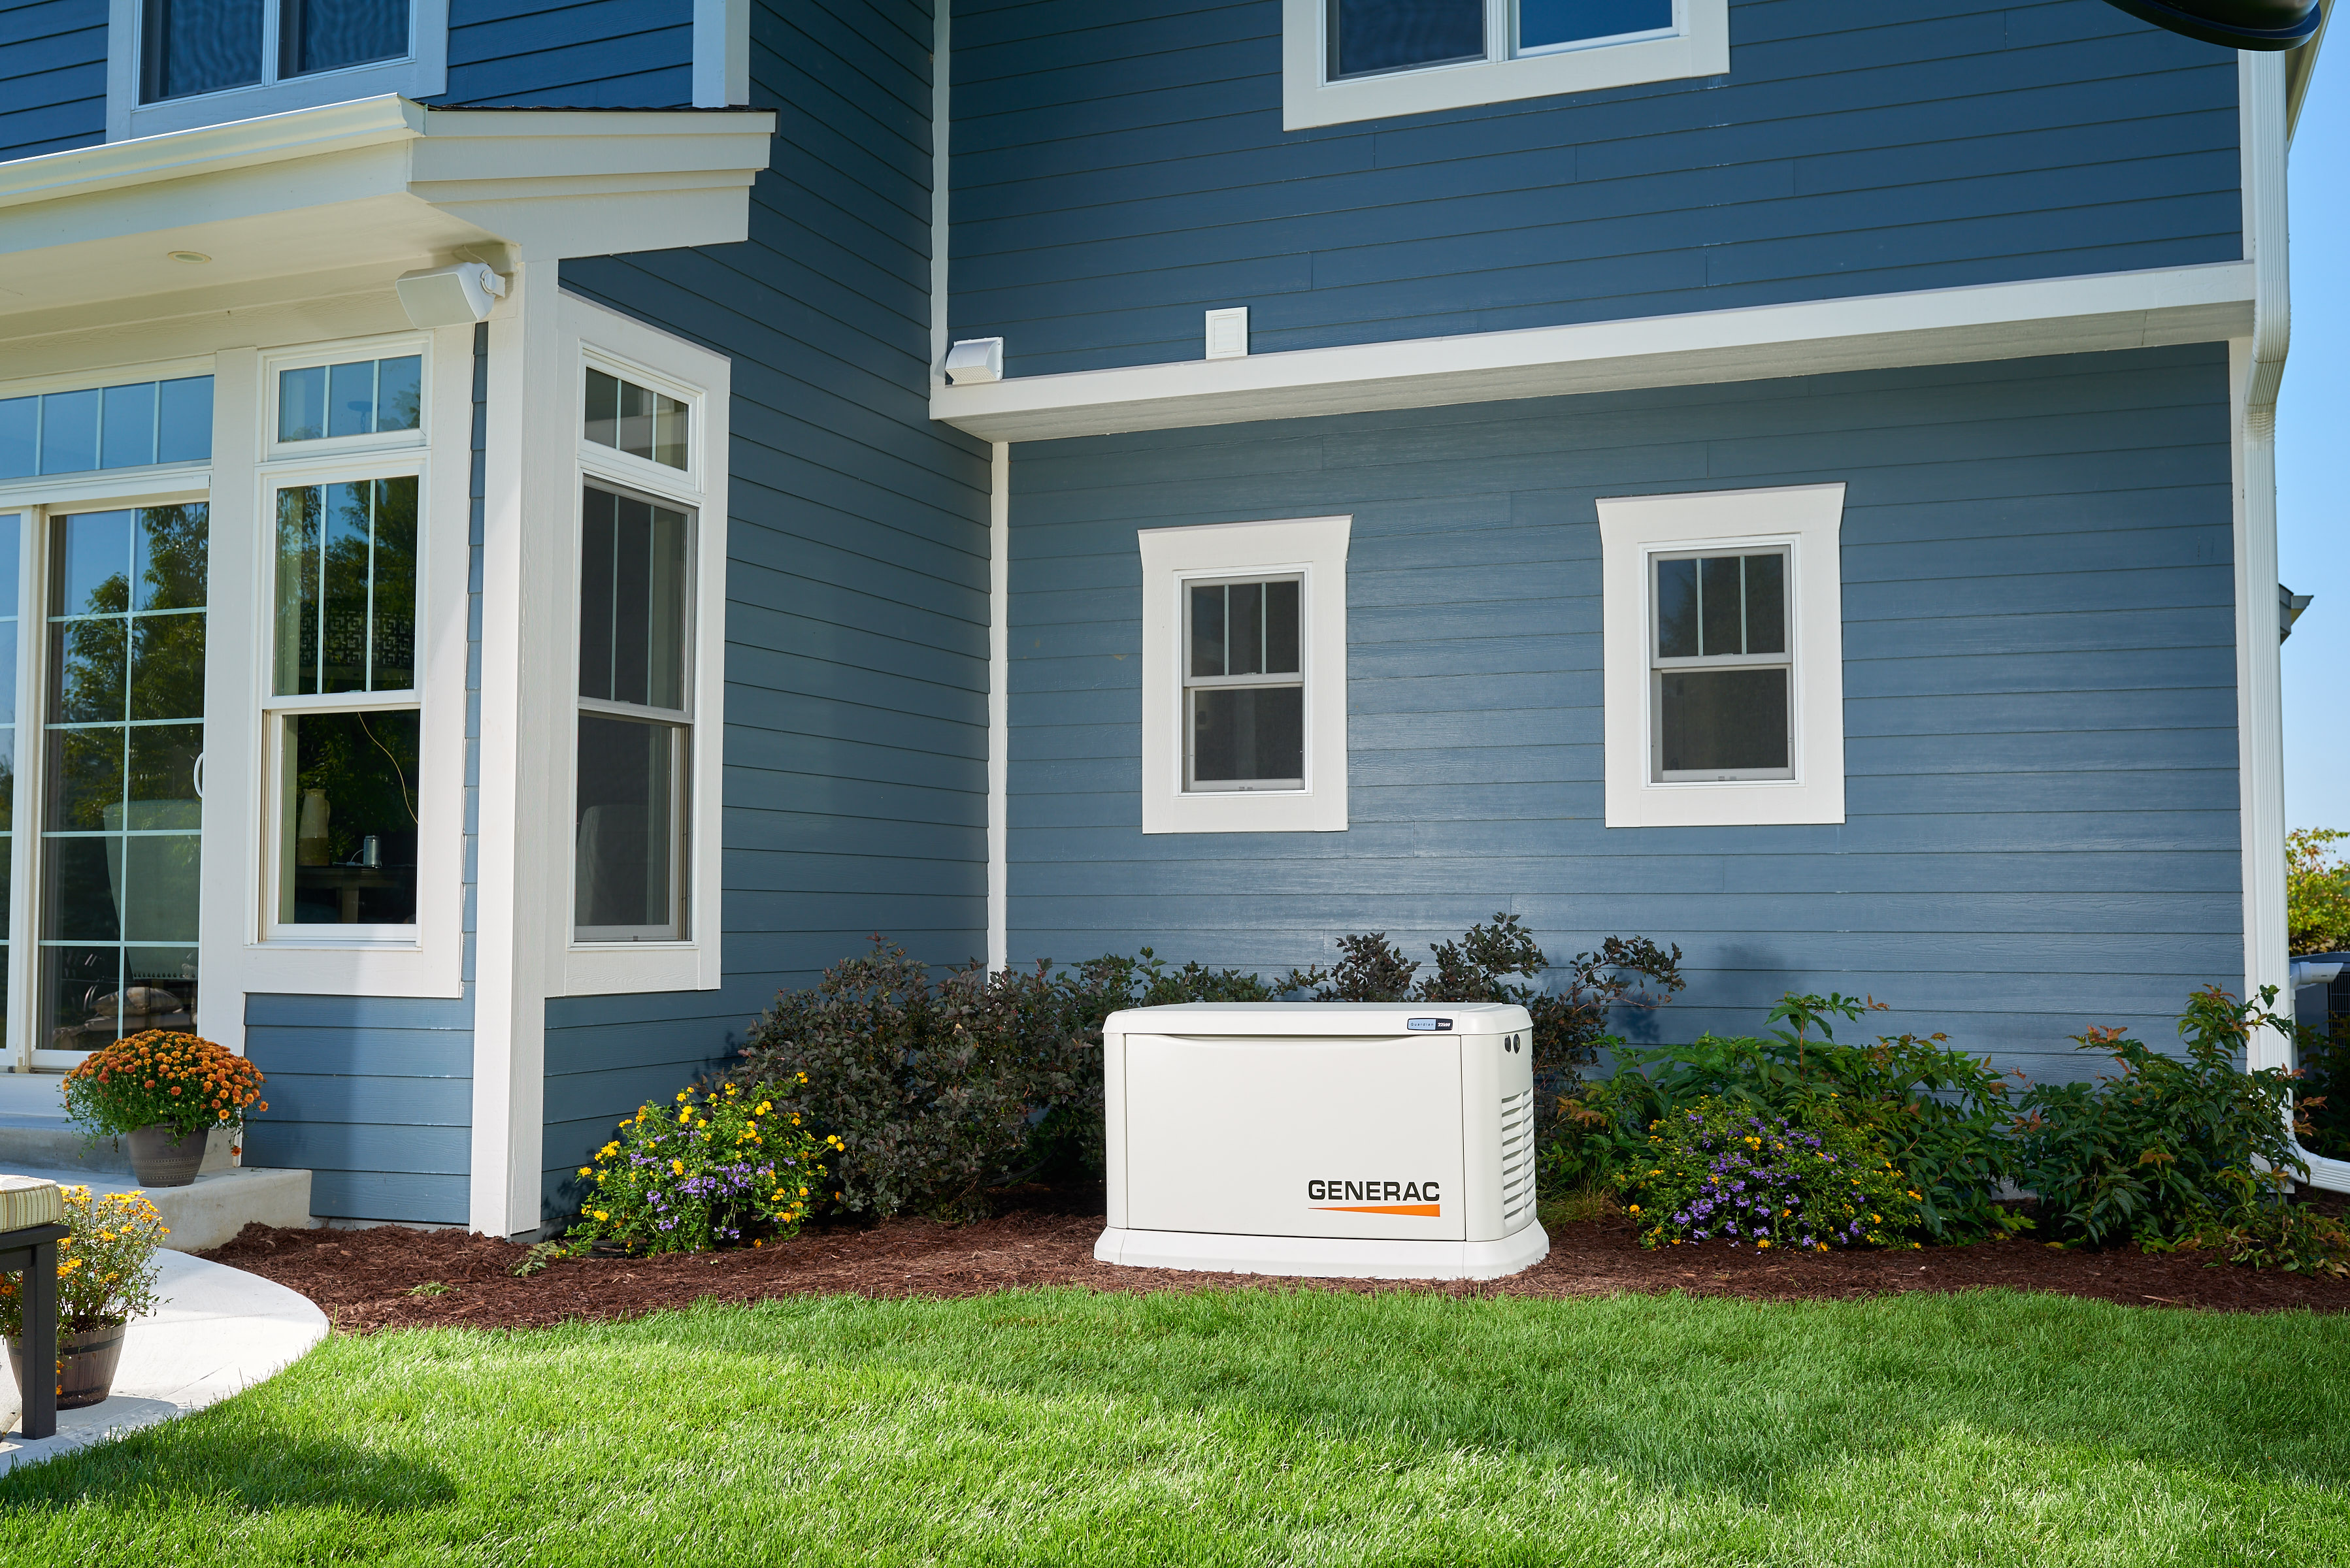 Generac Power Systems Backup Power for Your Home with Generac Home